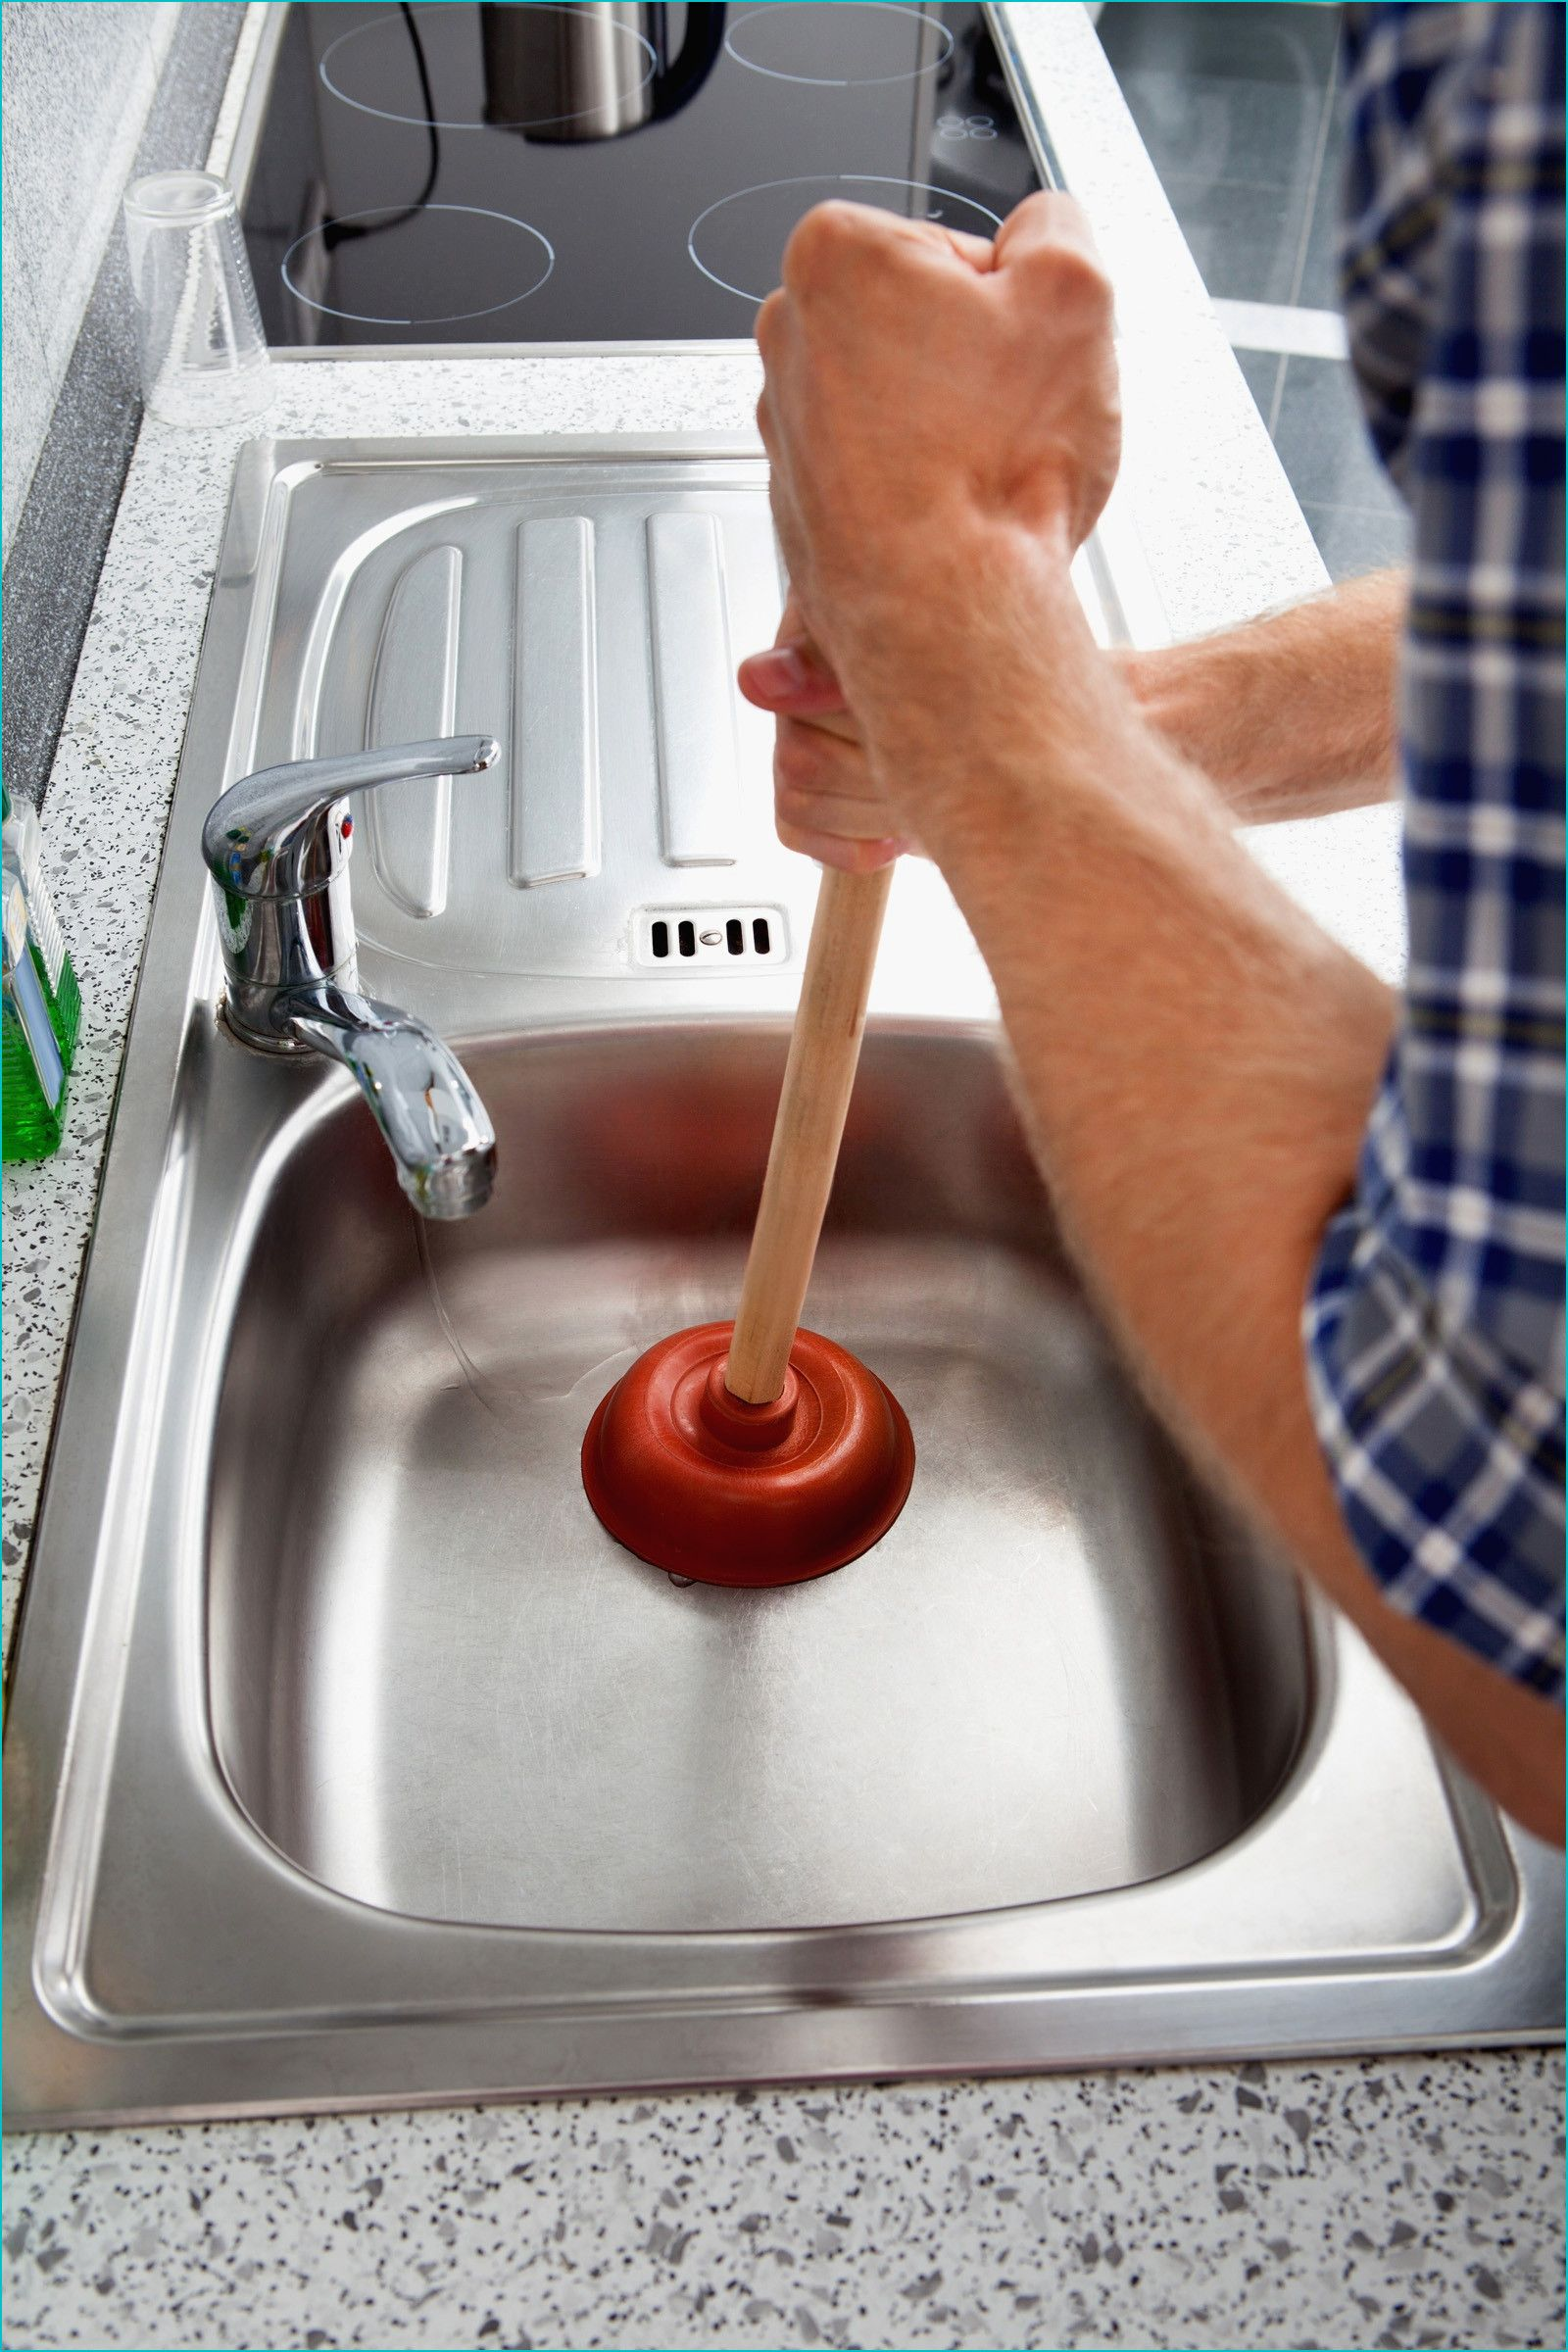 Cheap Plunger For Sink On Modern Small House Decorating Ideas 89 With Plunger For Sink Sink Kitchen Sink Sink Drain